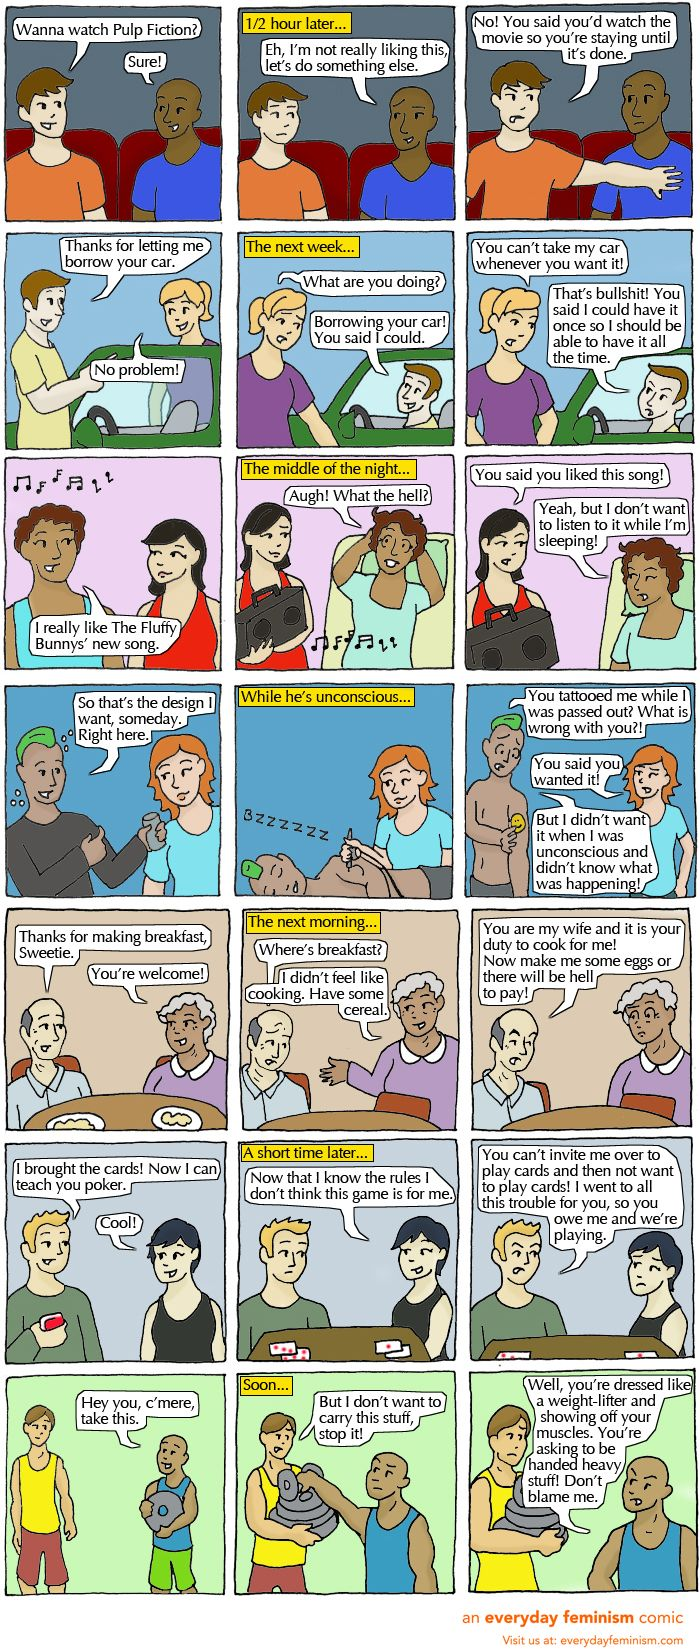 What If We Treated All Consent Like Society Treats Sexual Consent? by Everyday Feminism || I love these kinds of comics. They explain things so well.